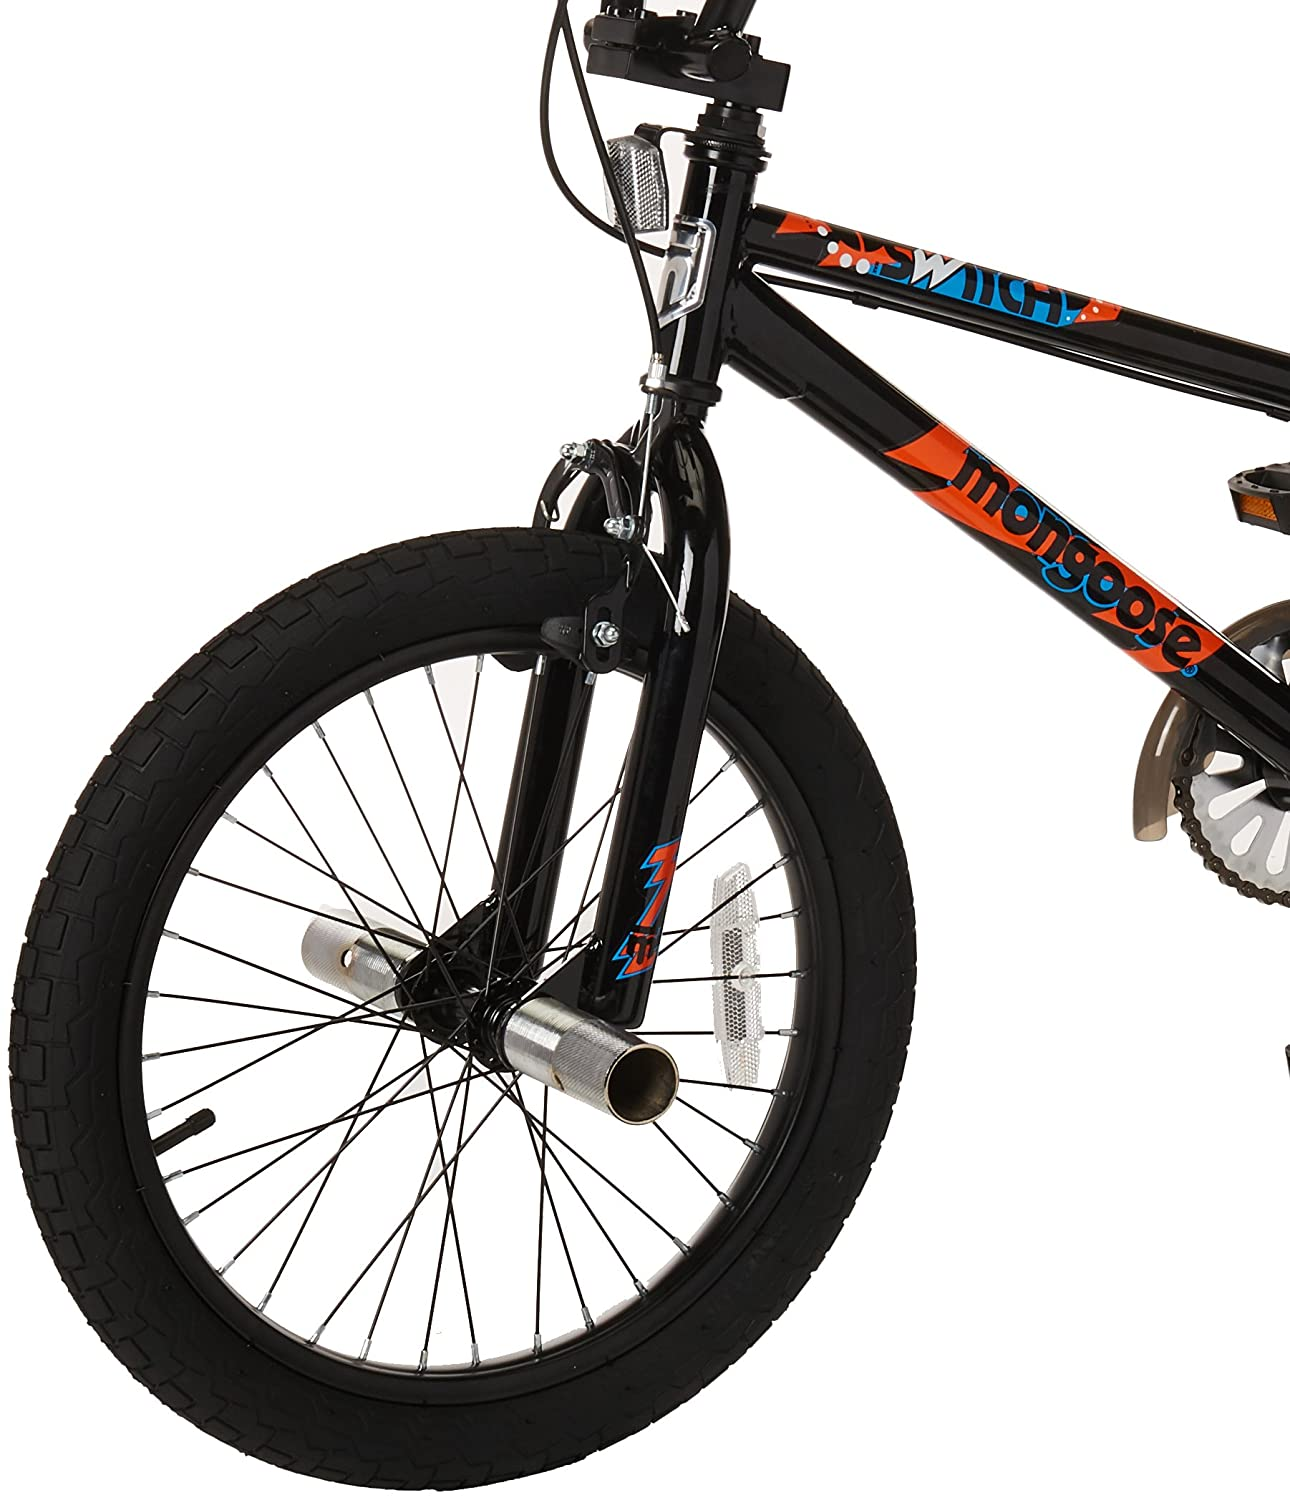 44b92250c61 Amazon.com : Mongoose Switch Children's BMX Sidewalk Bike, Featuring  12-Inch/Small Steel Frame, Front and Rear Handbrakes with Rear Coaster  Brake, ...